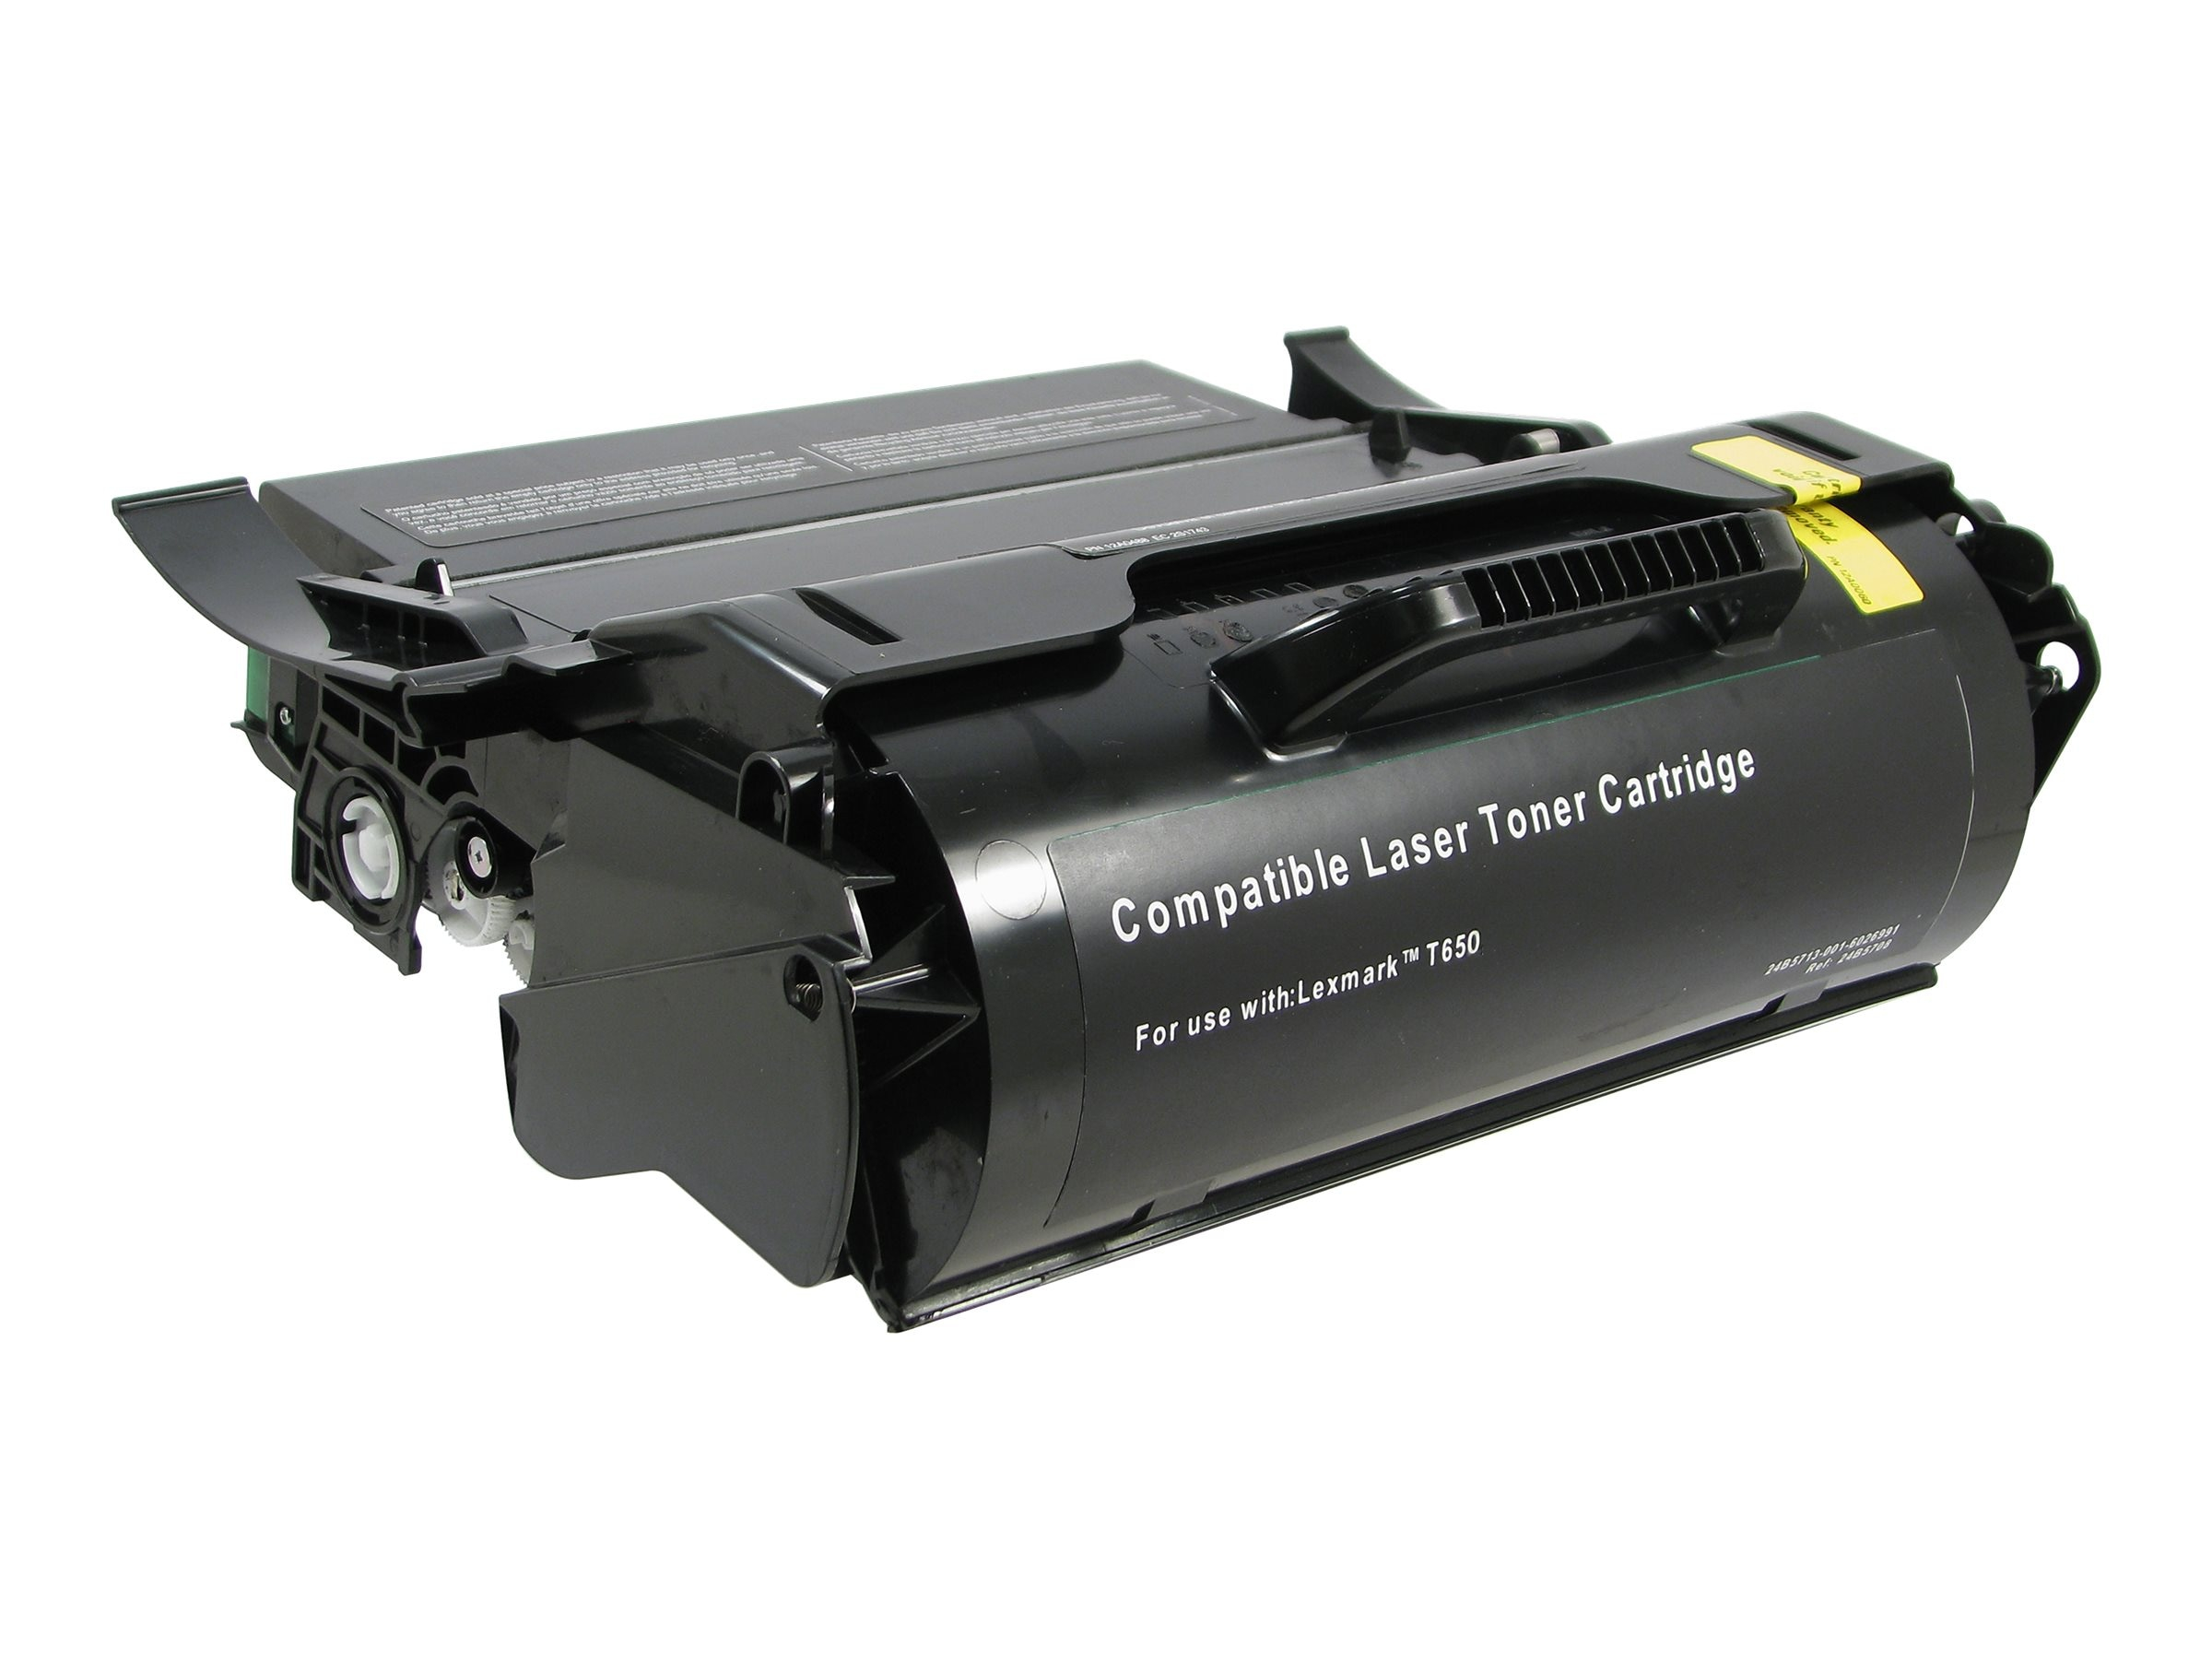 V7 T650H11A Black High Yield Toner Cartridge for Lexmark T650, T654, X651 & X654